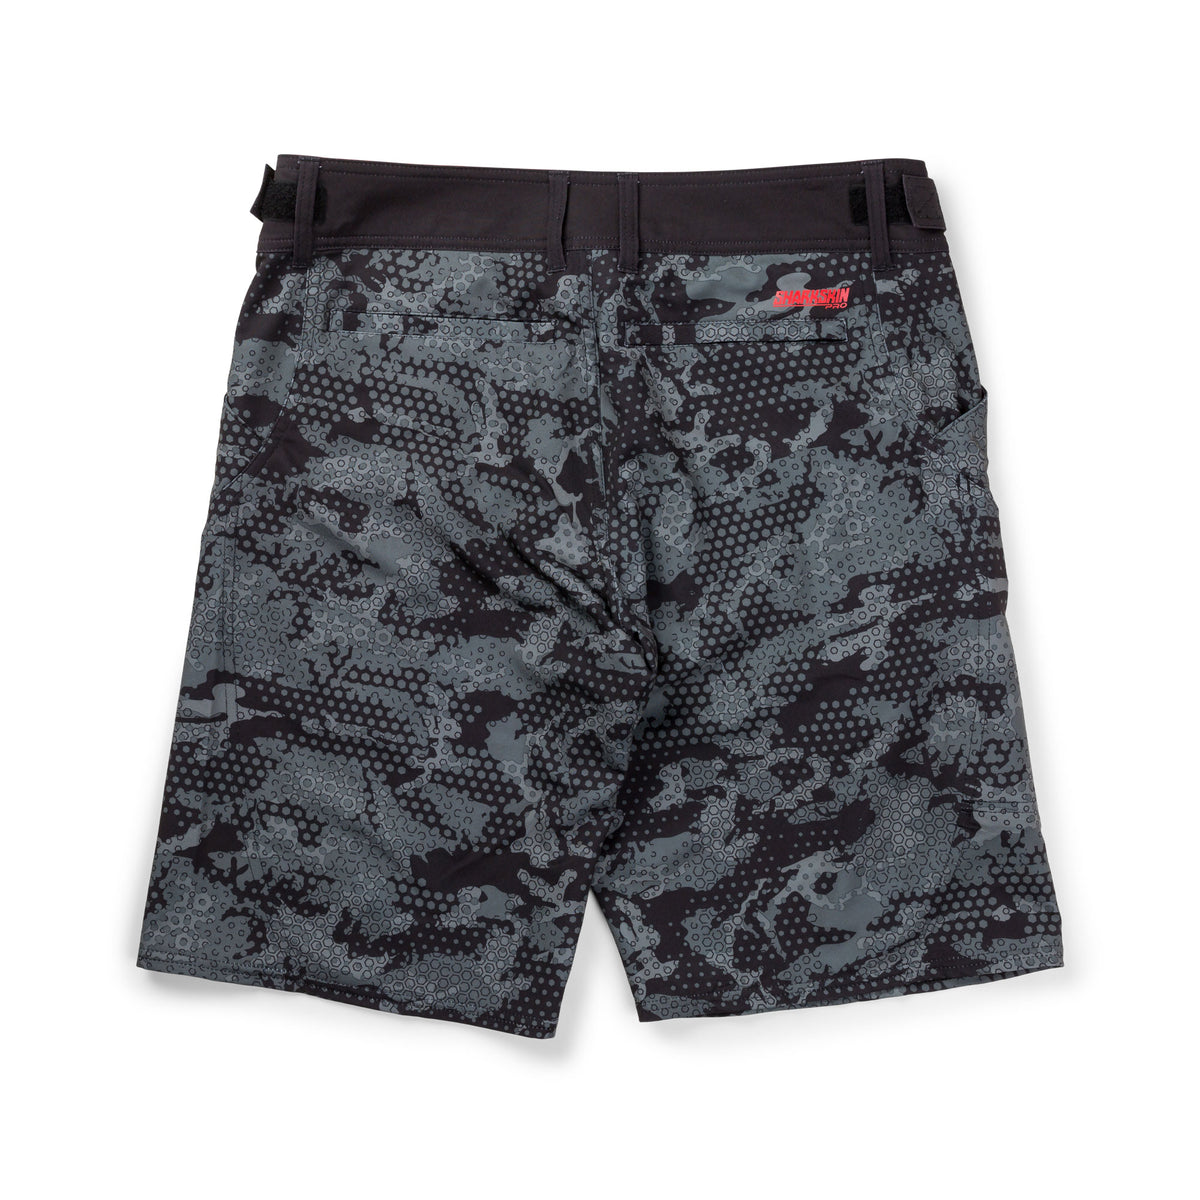 Sharkskin Pro Fishing Shorts Big Image - 2